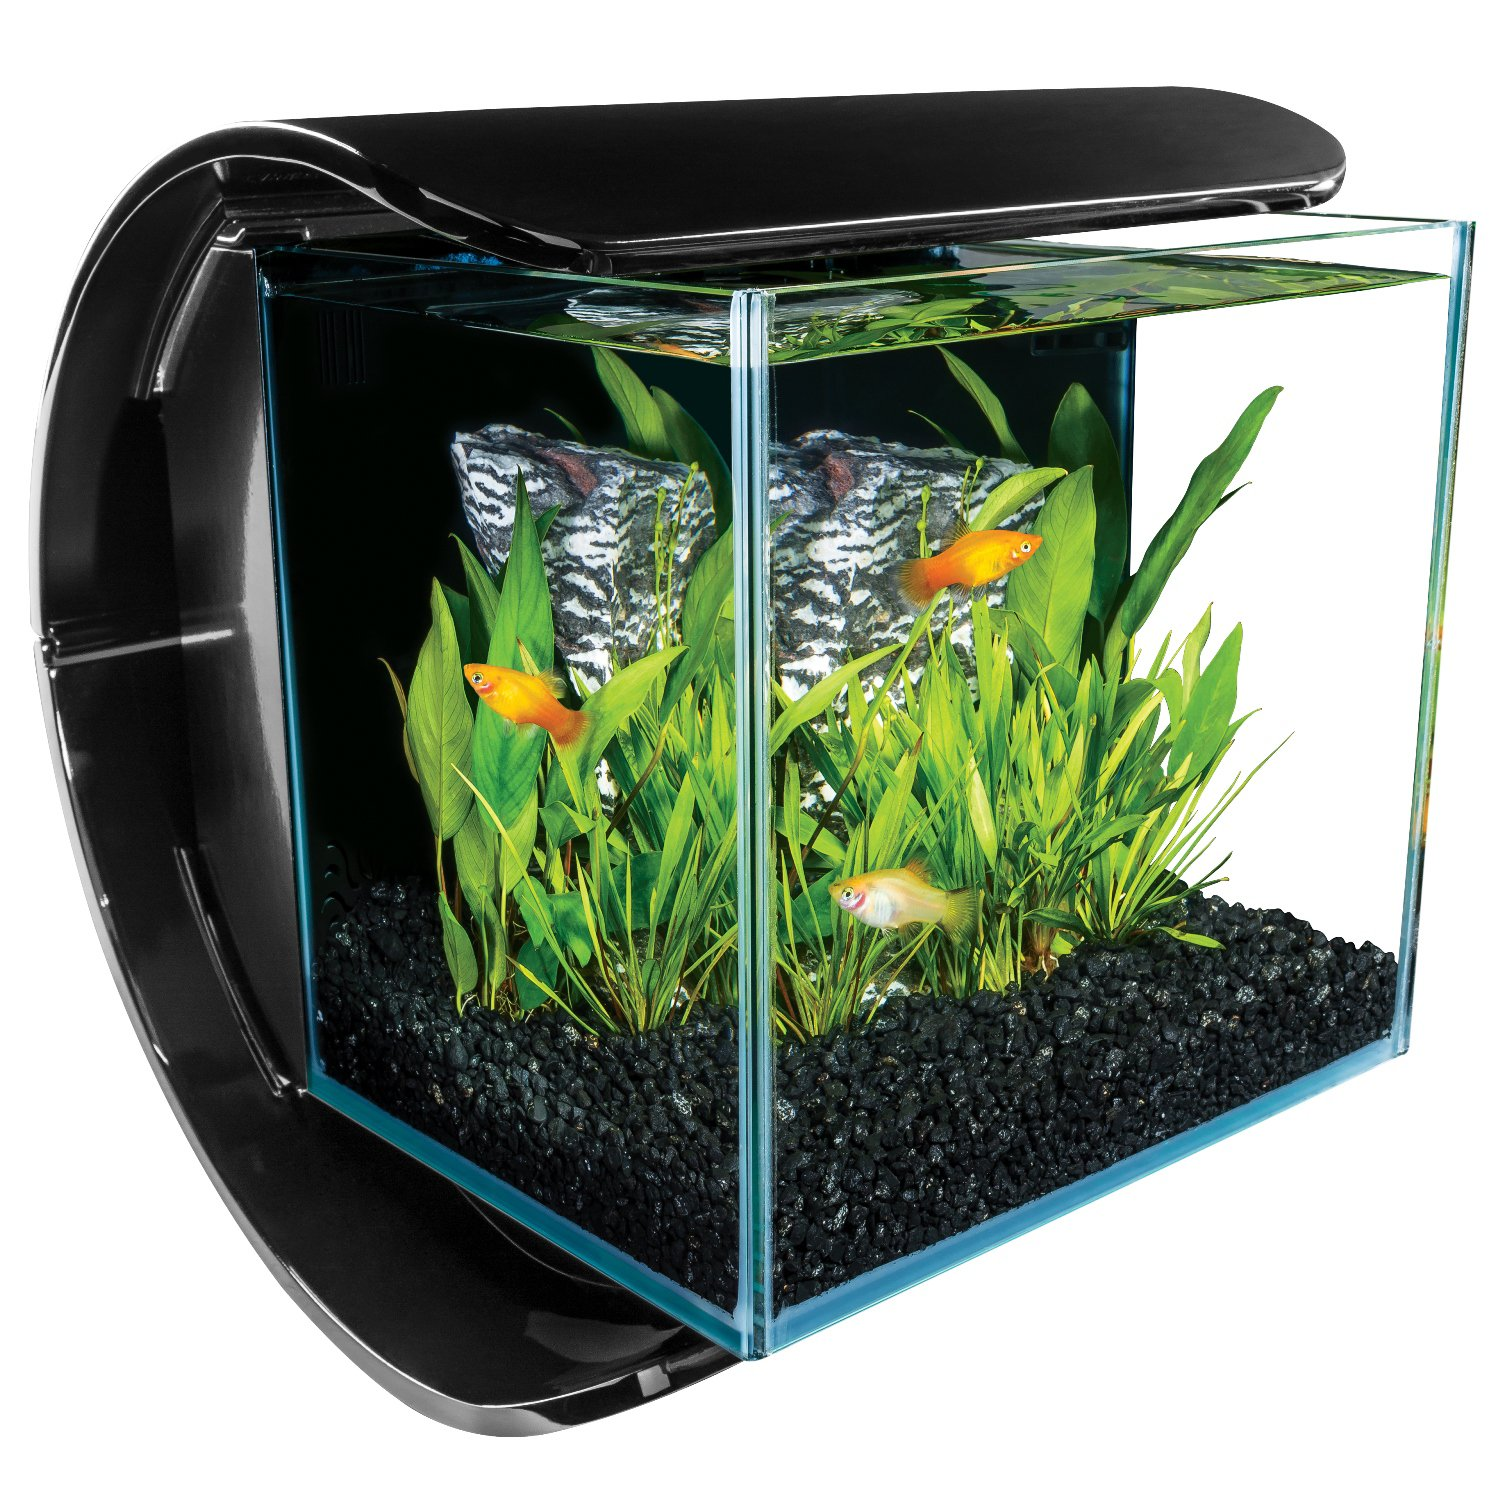 Marineland silhouette glass 3 gallon led aquarium kit petco for Aquarium boule 20 litres